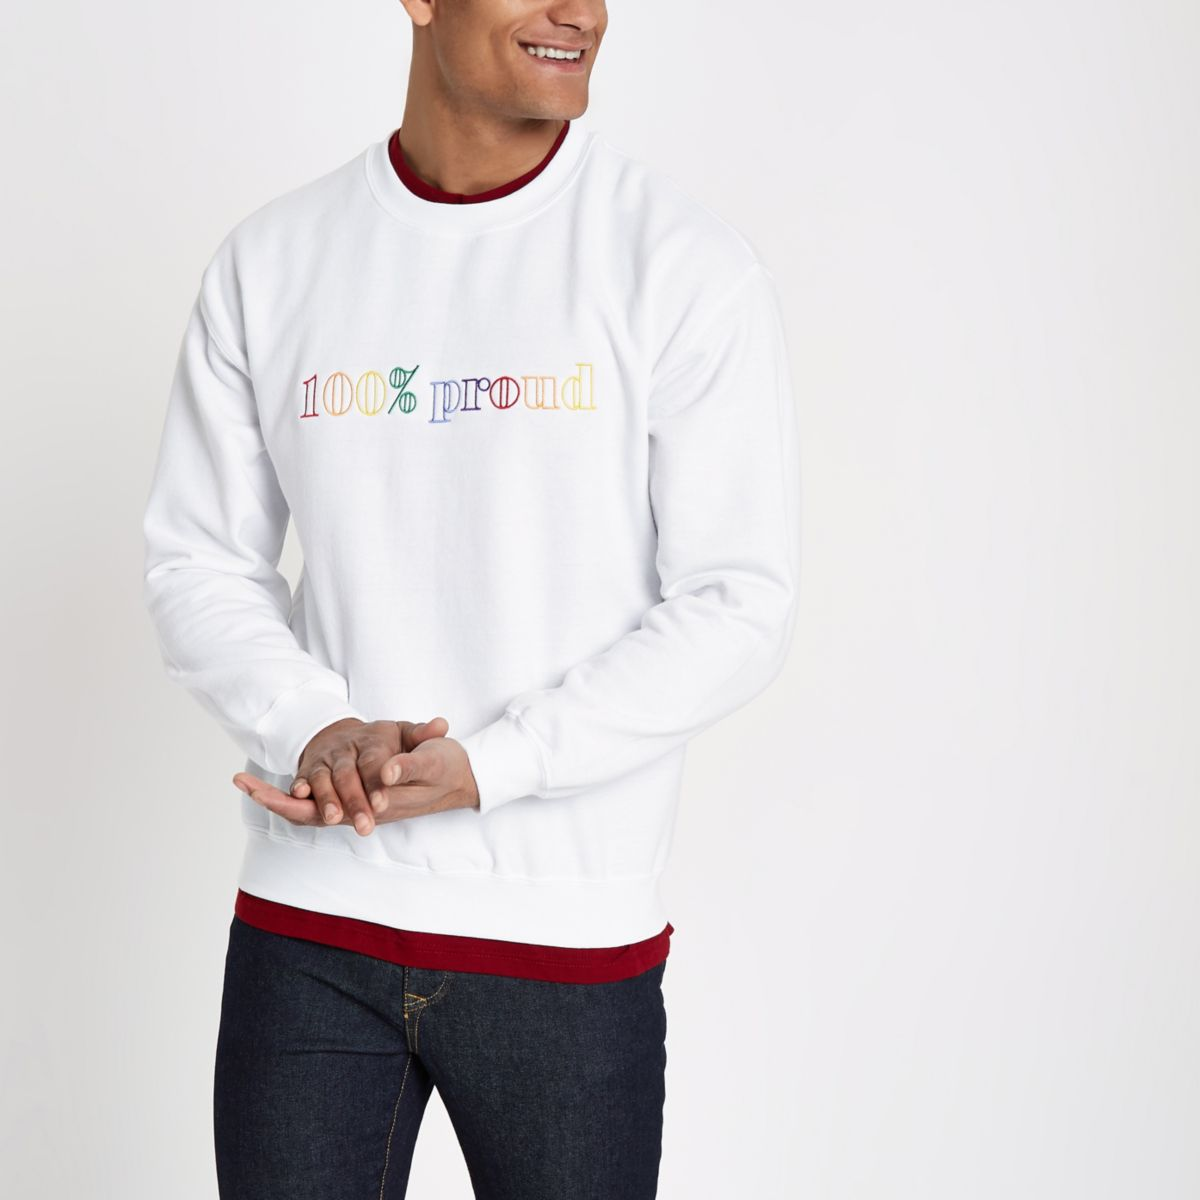 White '100% proud' pride sweatshirt